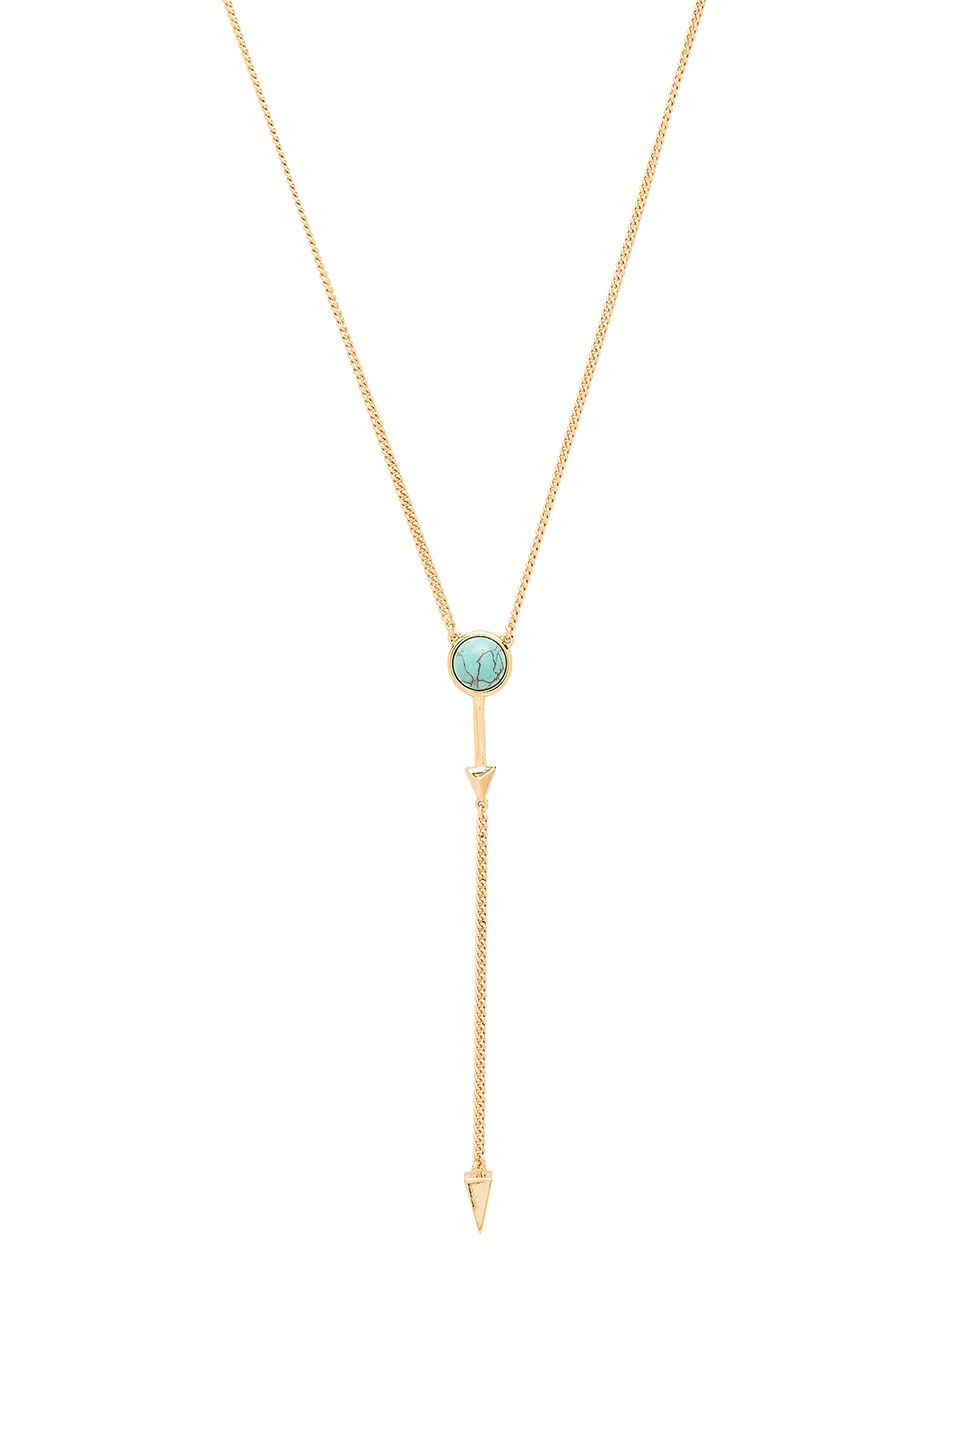 Rebecca Minkoff Boho Bead Lariat Necklace in Gold & Turquoise